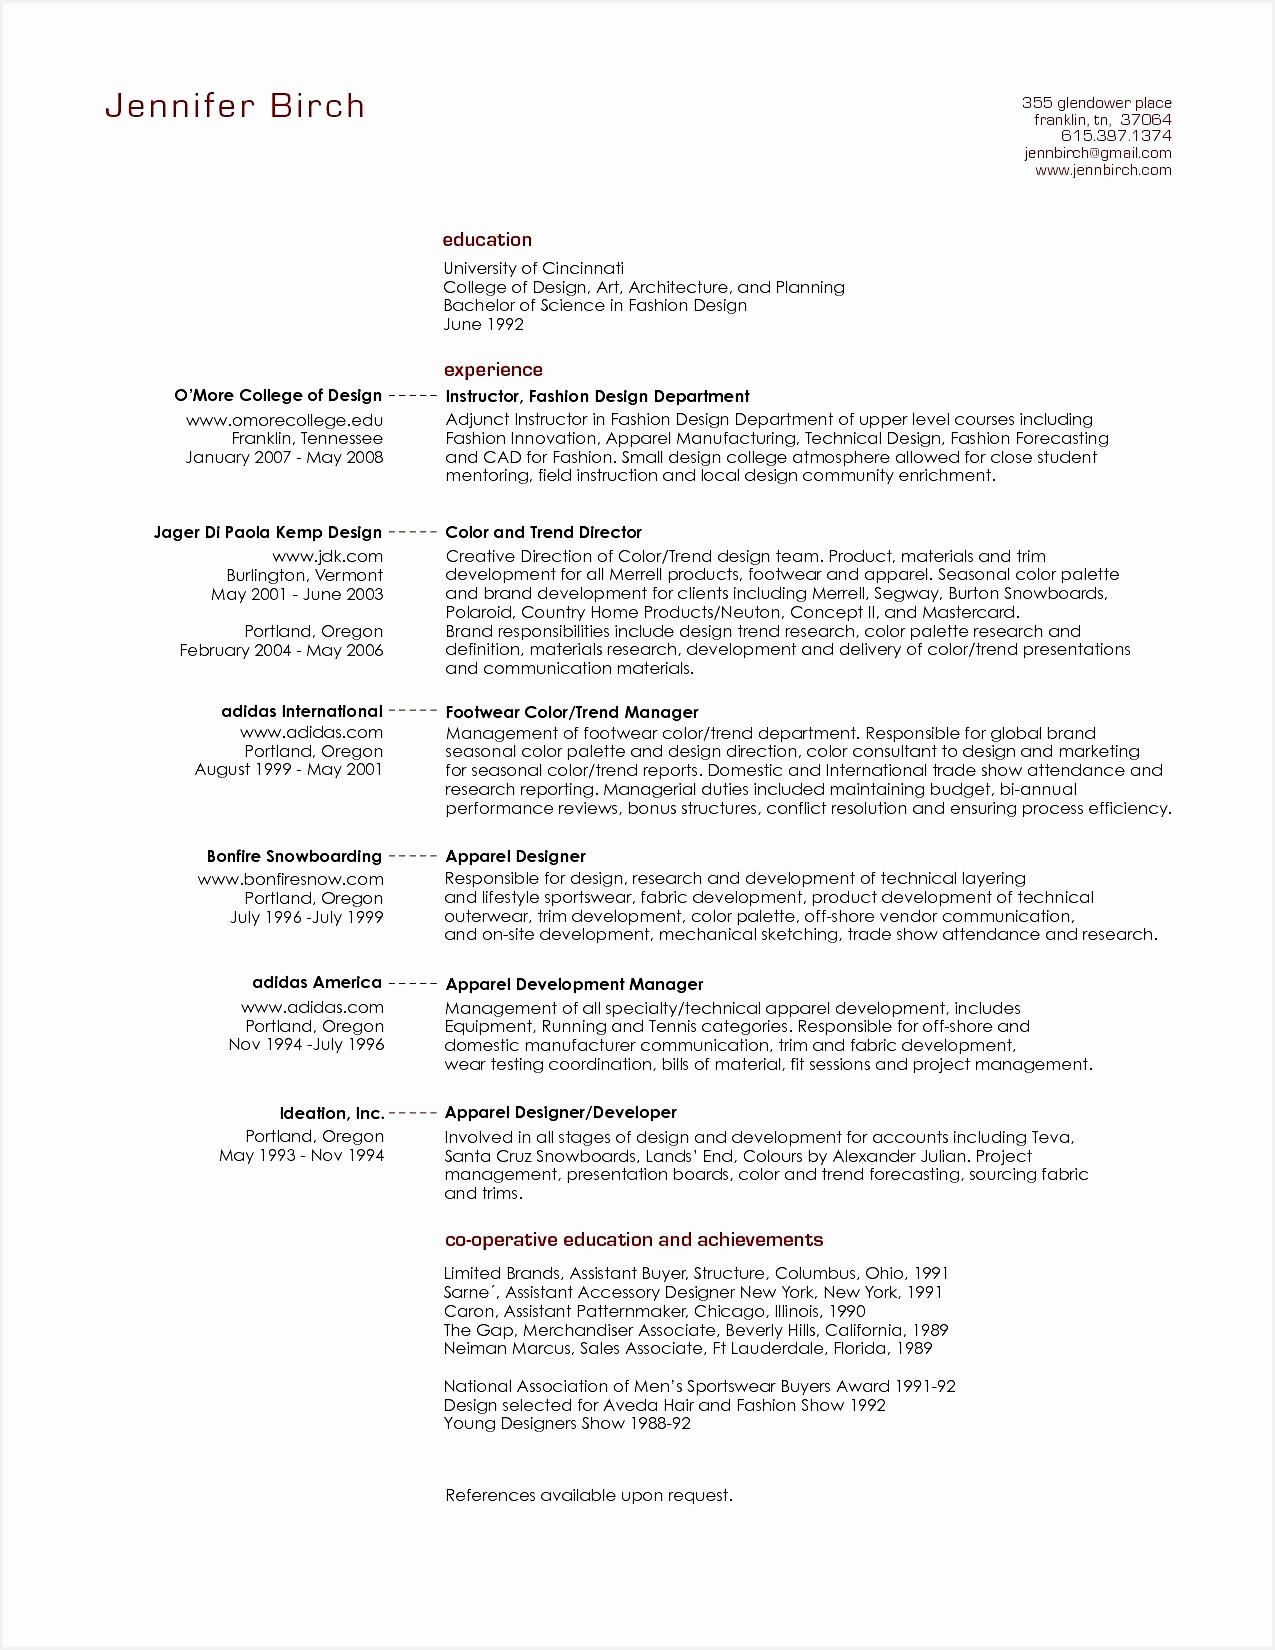 Resume Cv Executive Sample Luxury Resume Examples 0d16501275